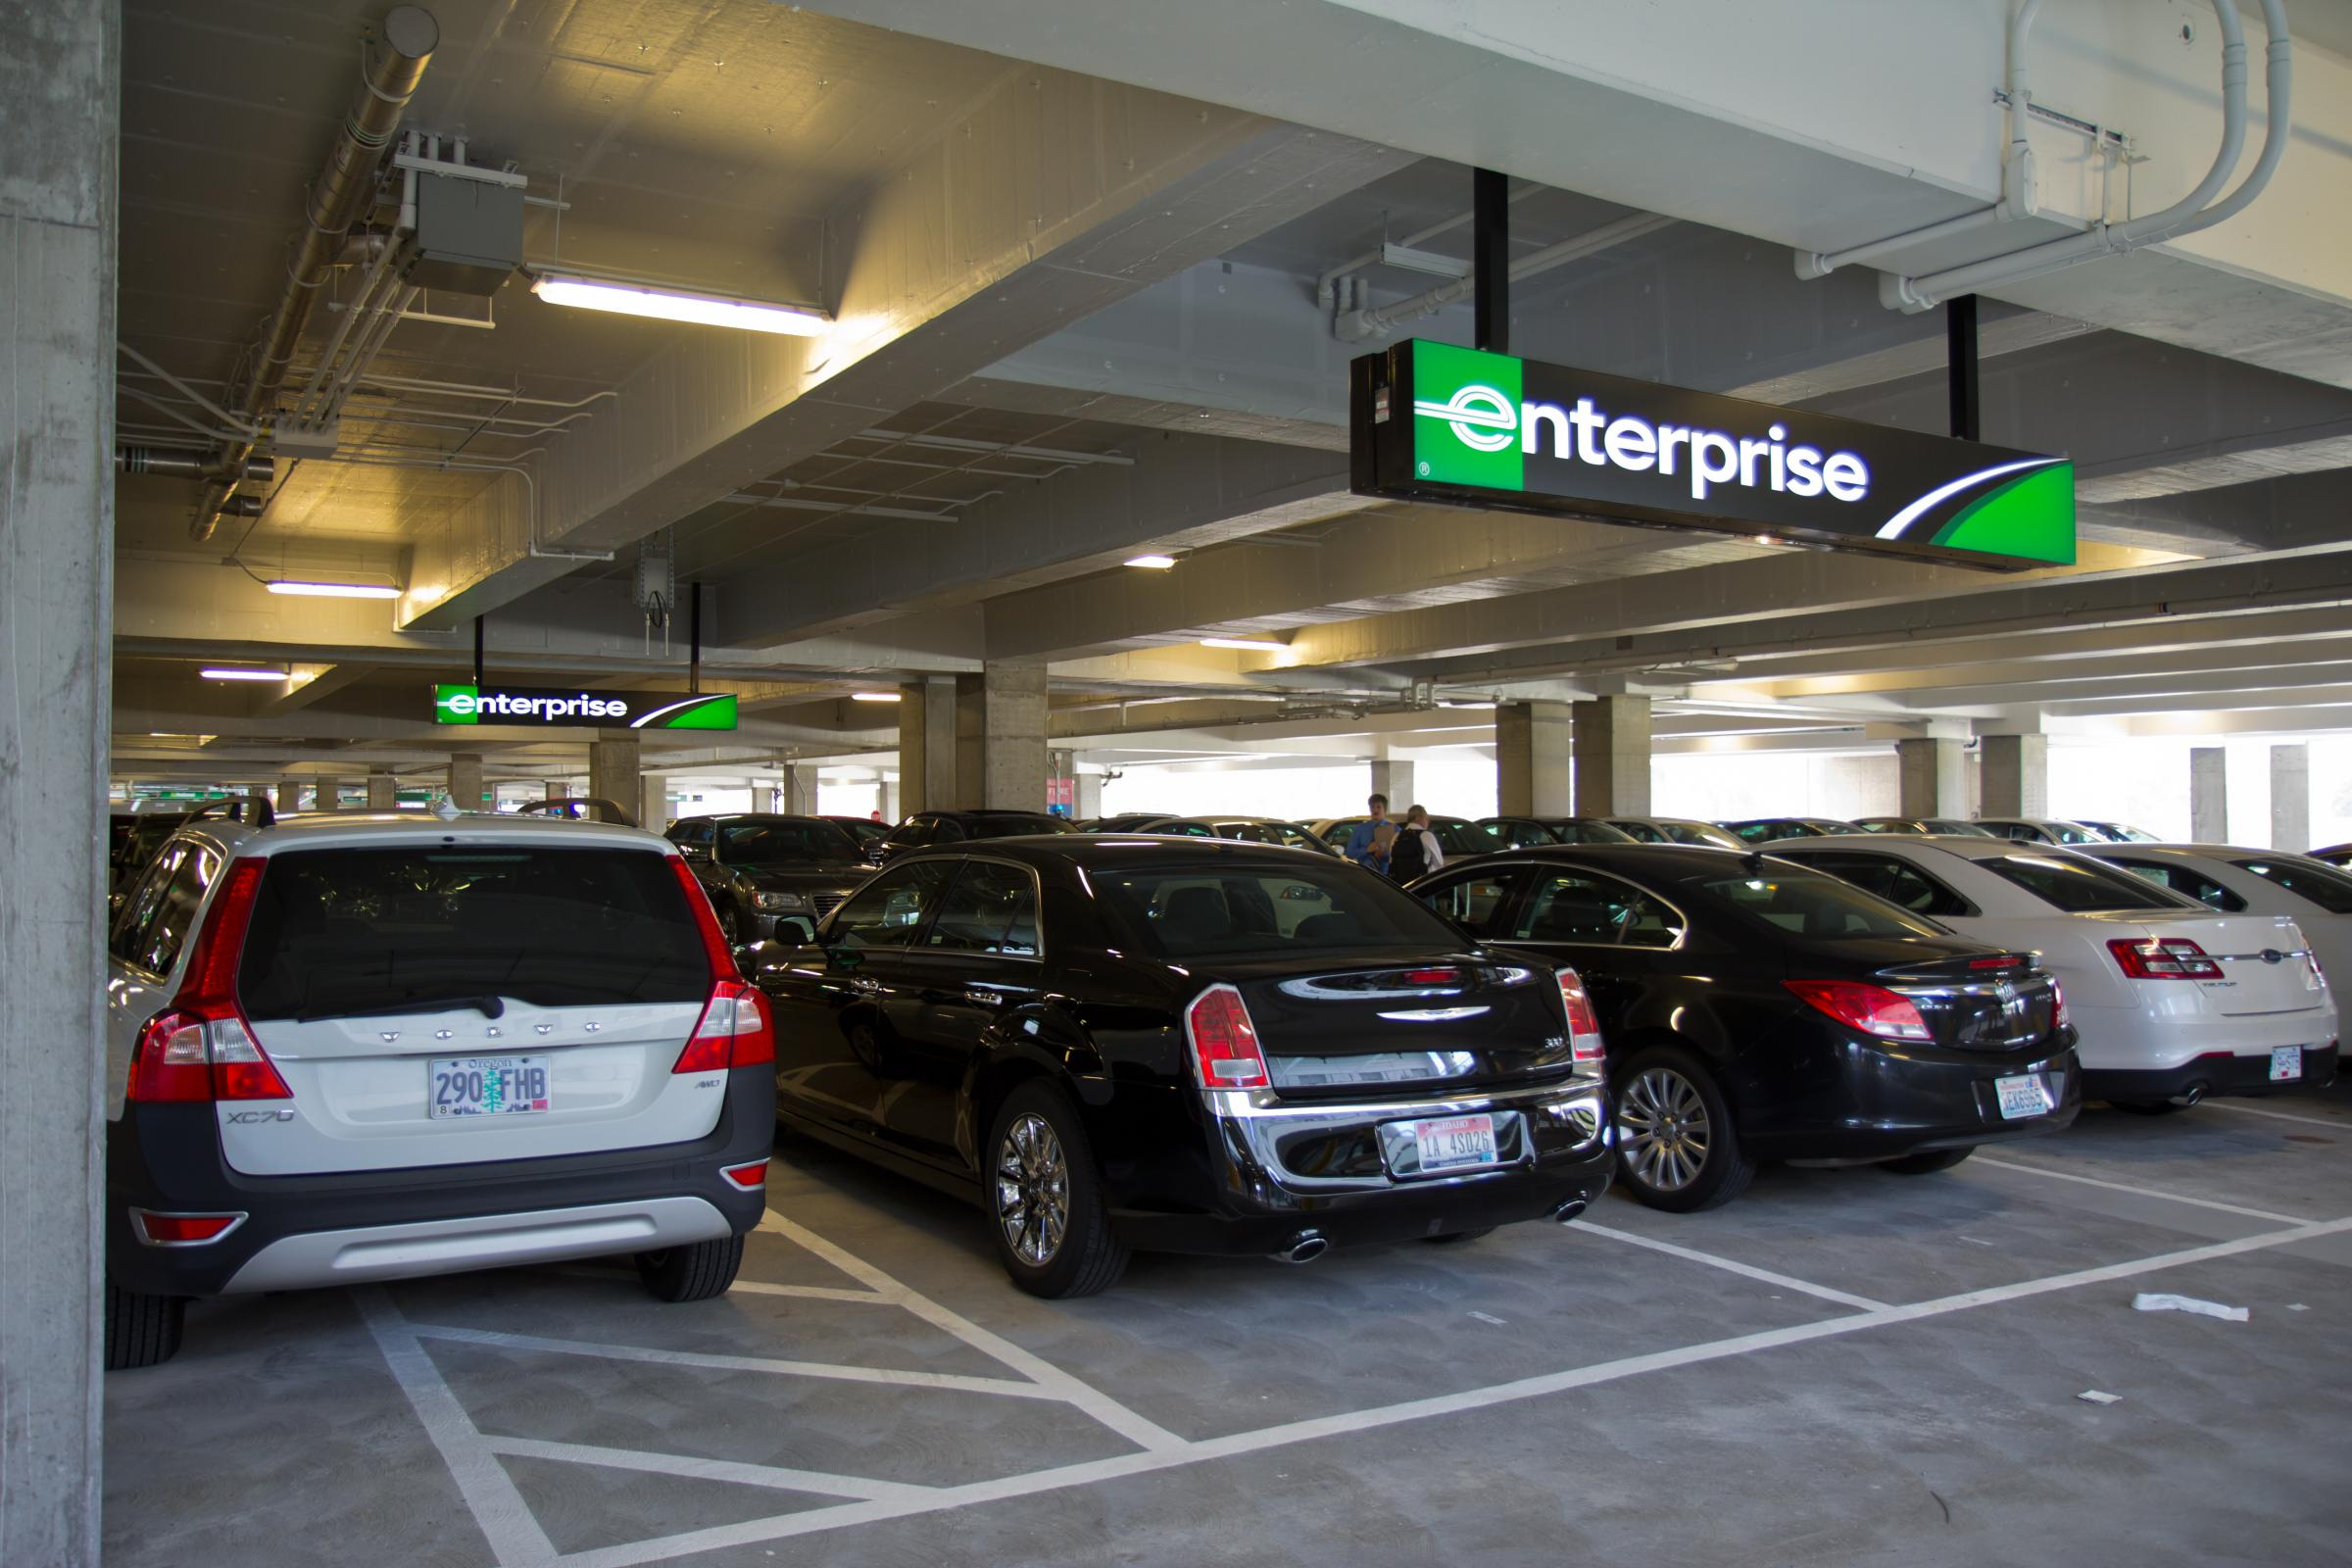 Enterprise Car Rental Houston International Airport